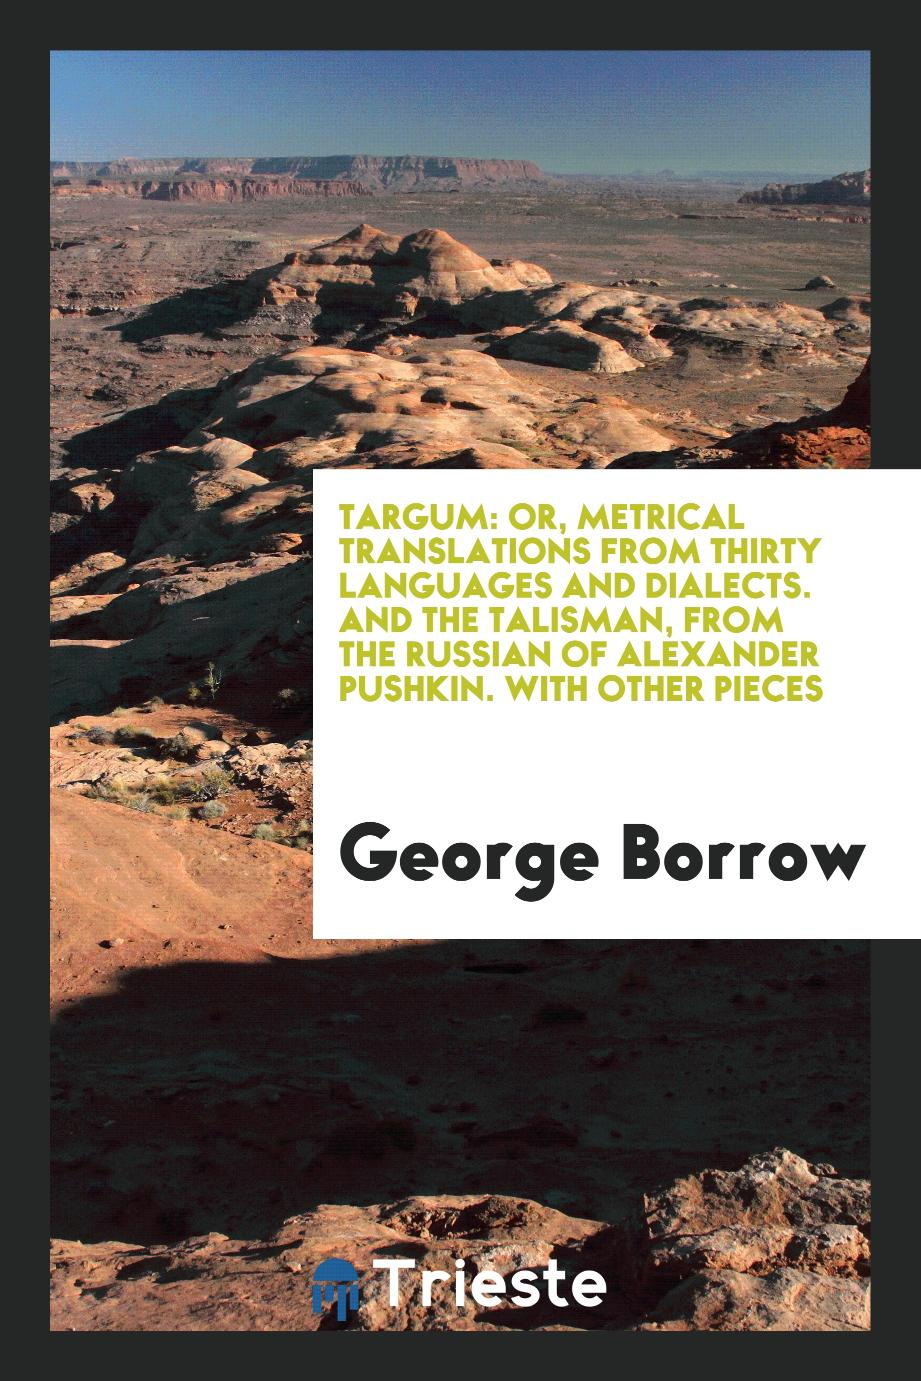 George Borrow - Targum: Or, Metrical Translations from Thirty Languages and Dialects. And the Talisman, from the Russian of Alexander Pushkin. With Other Pieces